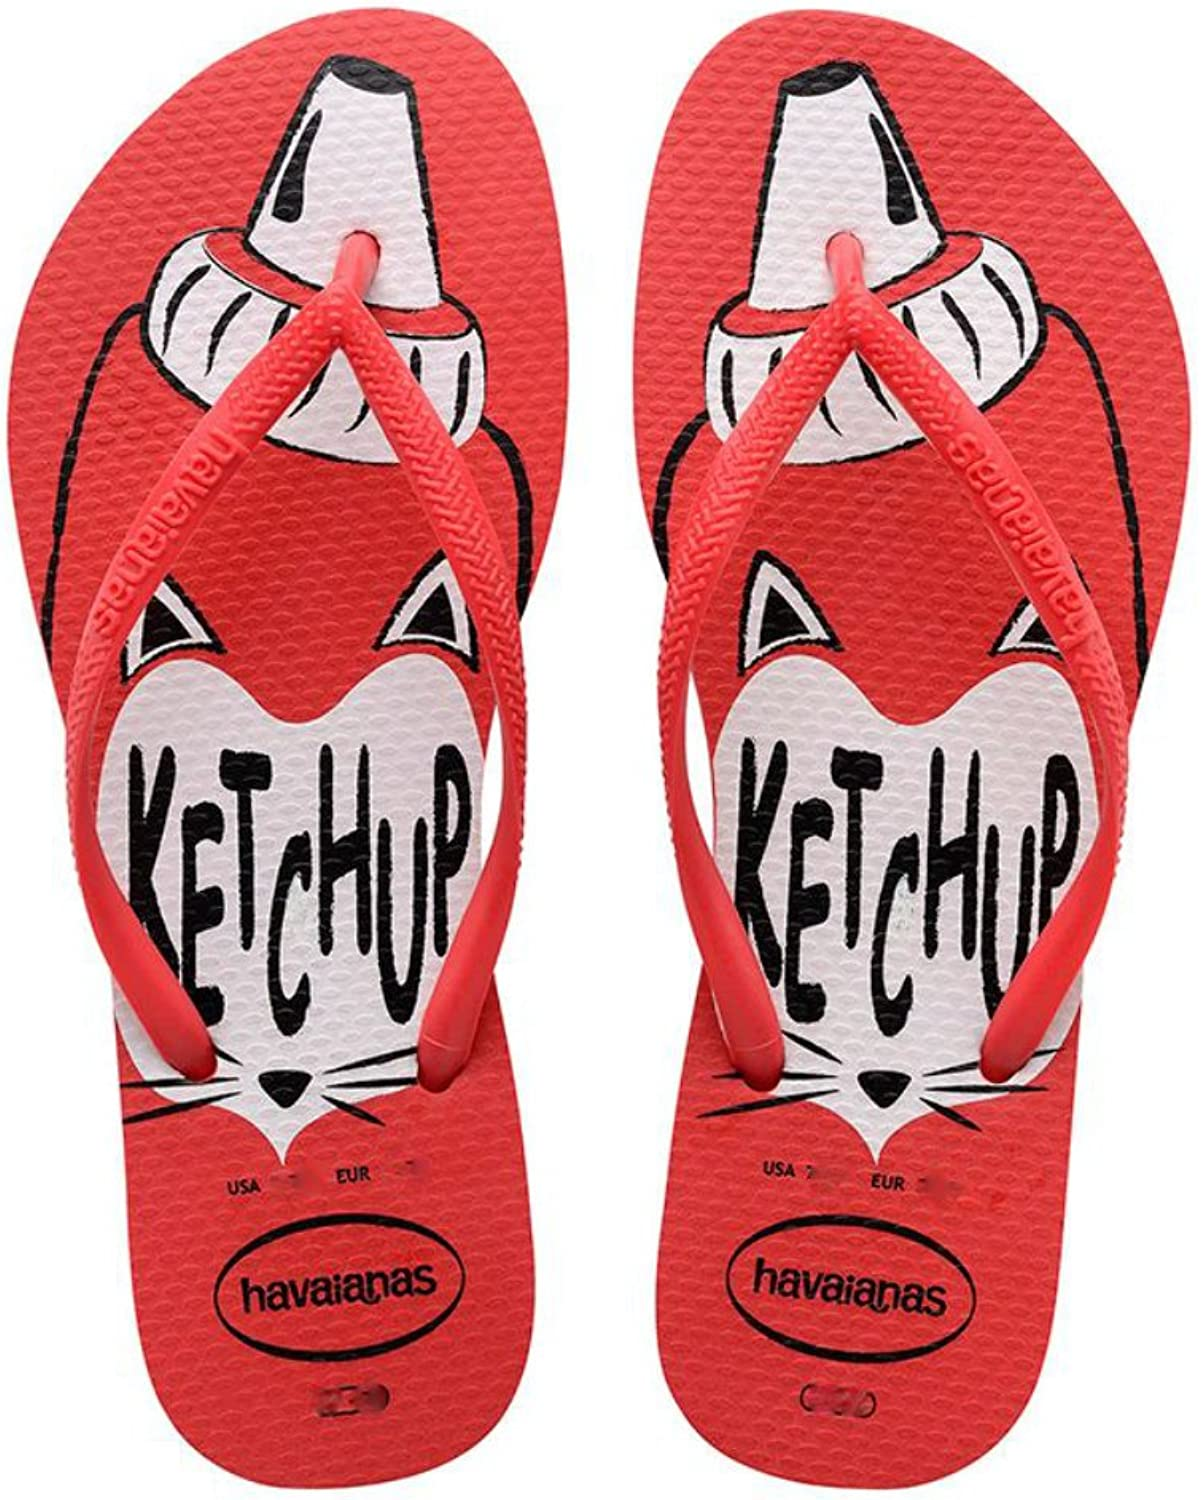 Havaianas Ketchup Theme Red Sandals 11 W